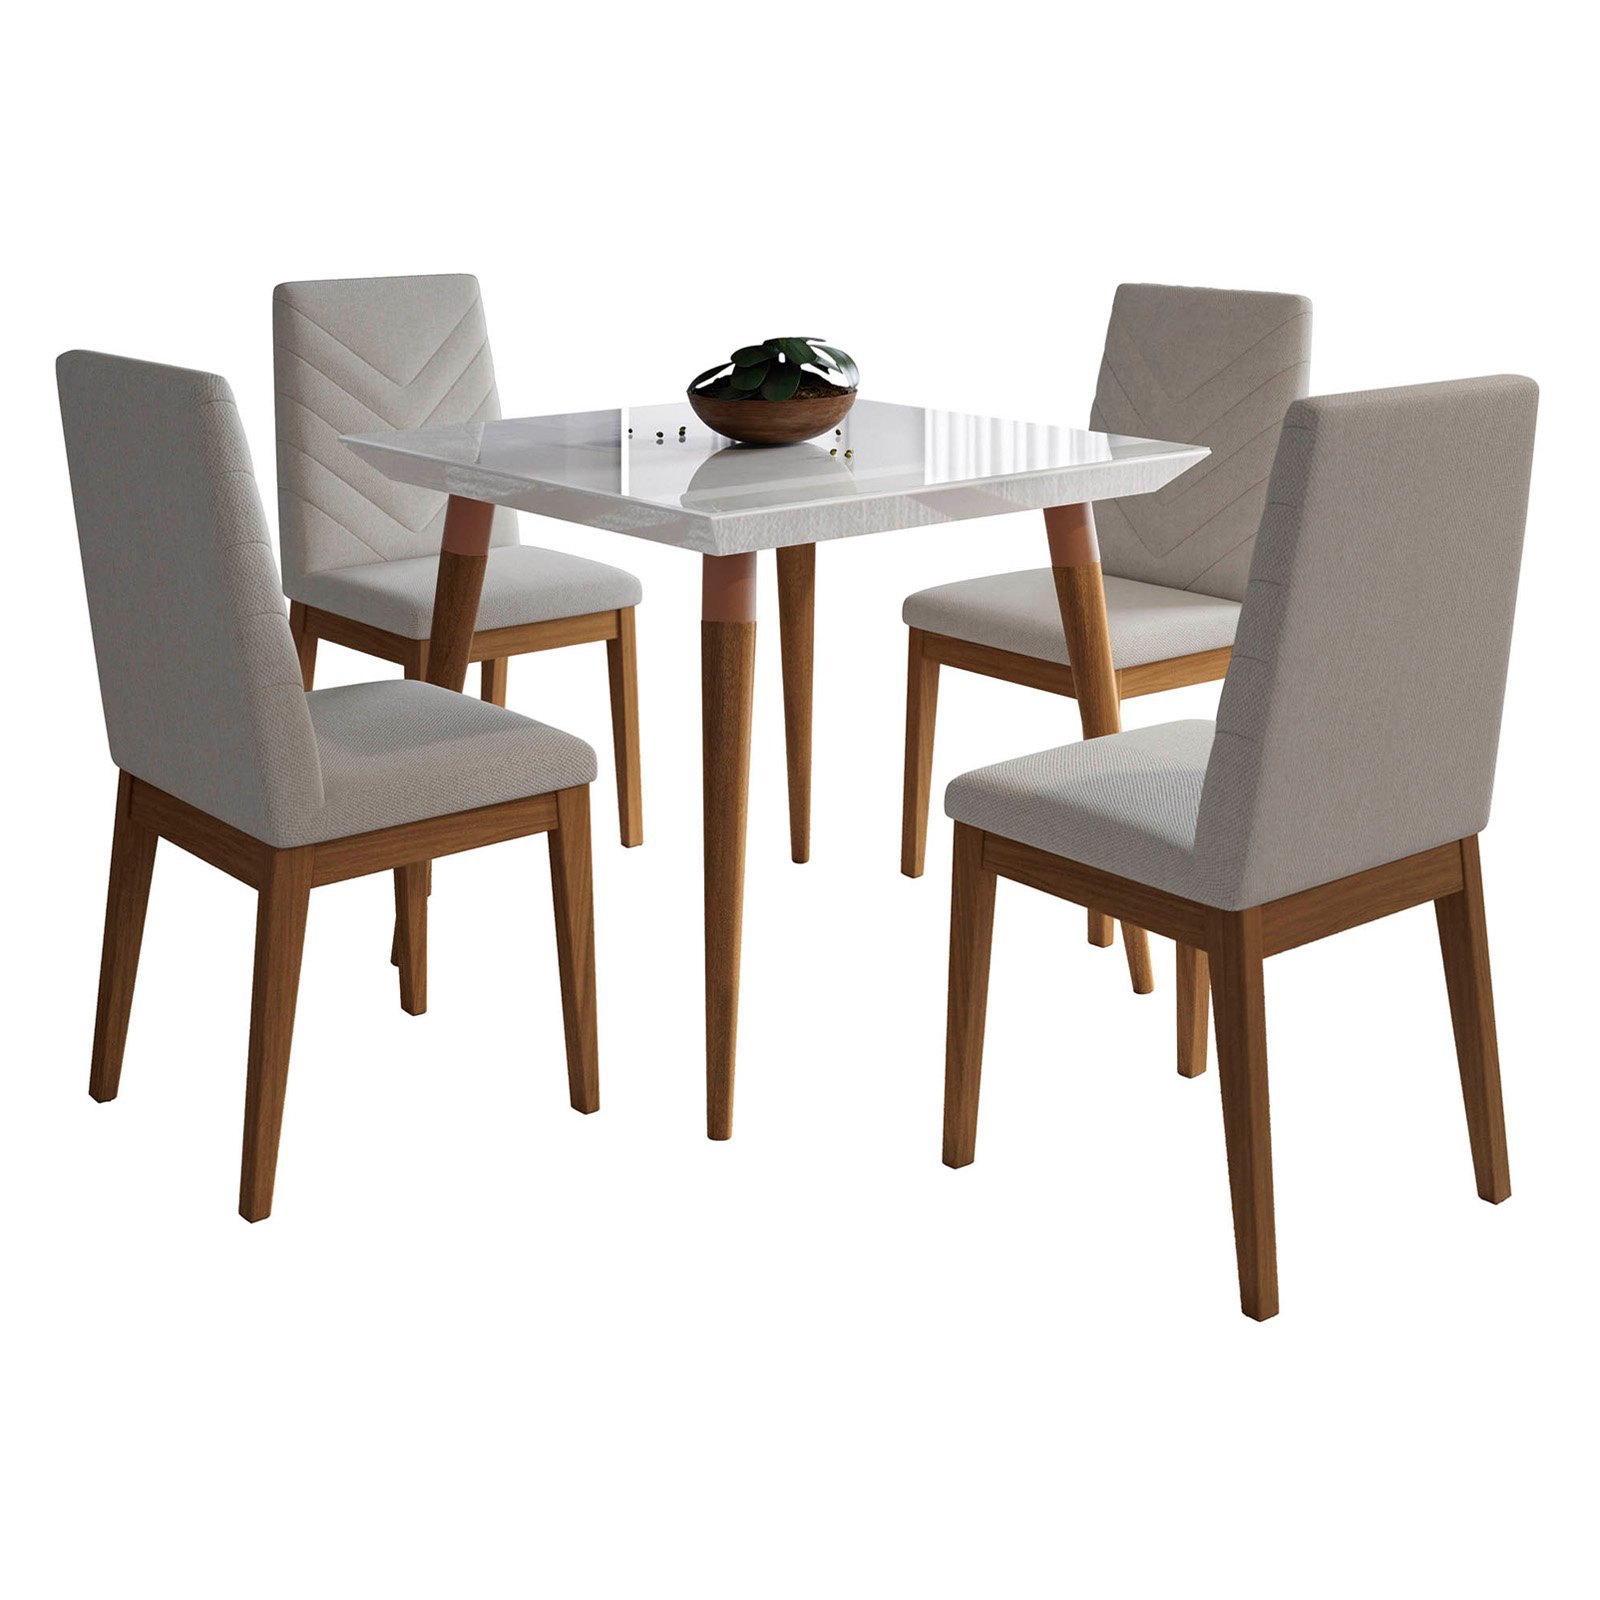 Manhattan Comfort Utopia and Catherine 5 Piece Square Dining Table Set